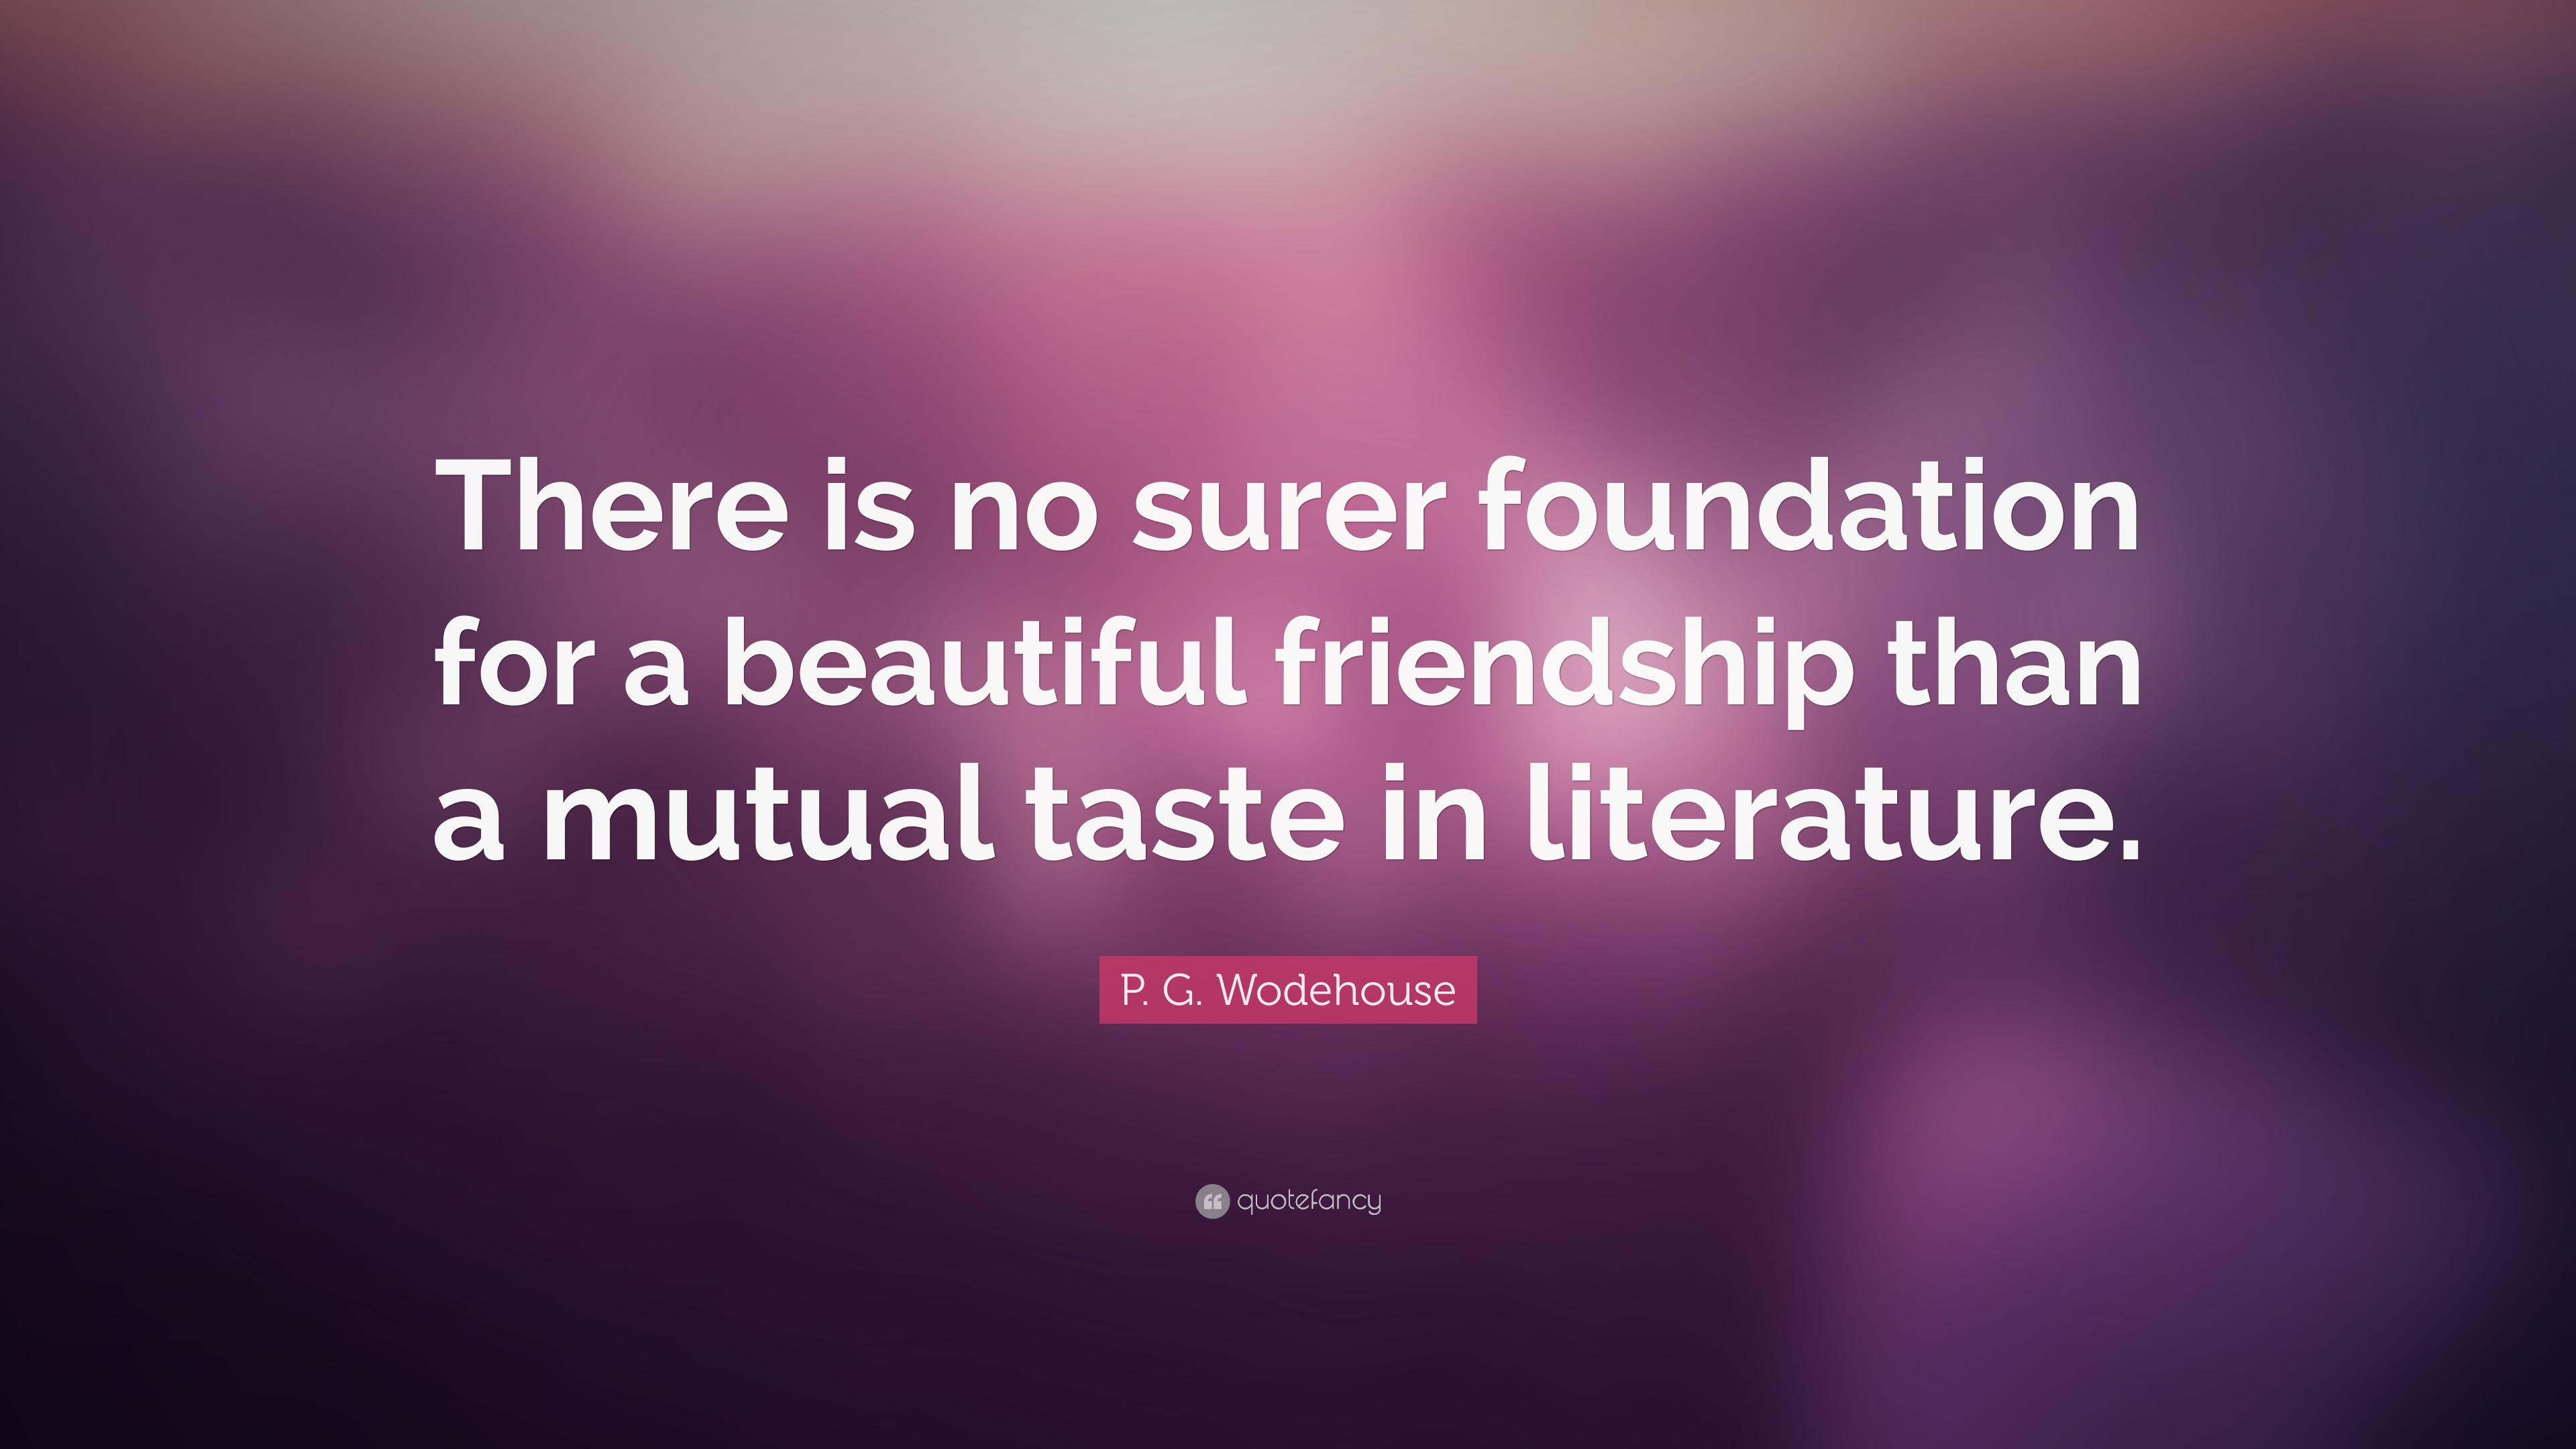 """Literary Quotes About Friendship Pgwodehouse Quote """"There Is No Surer Foundation For A"""